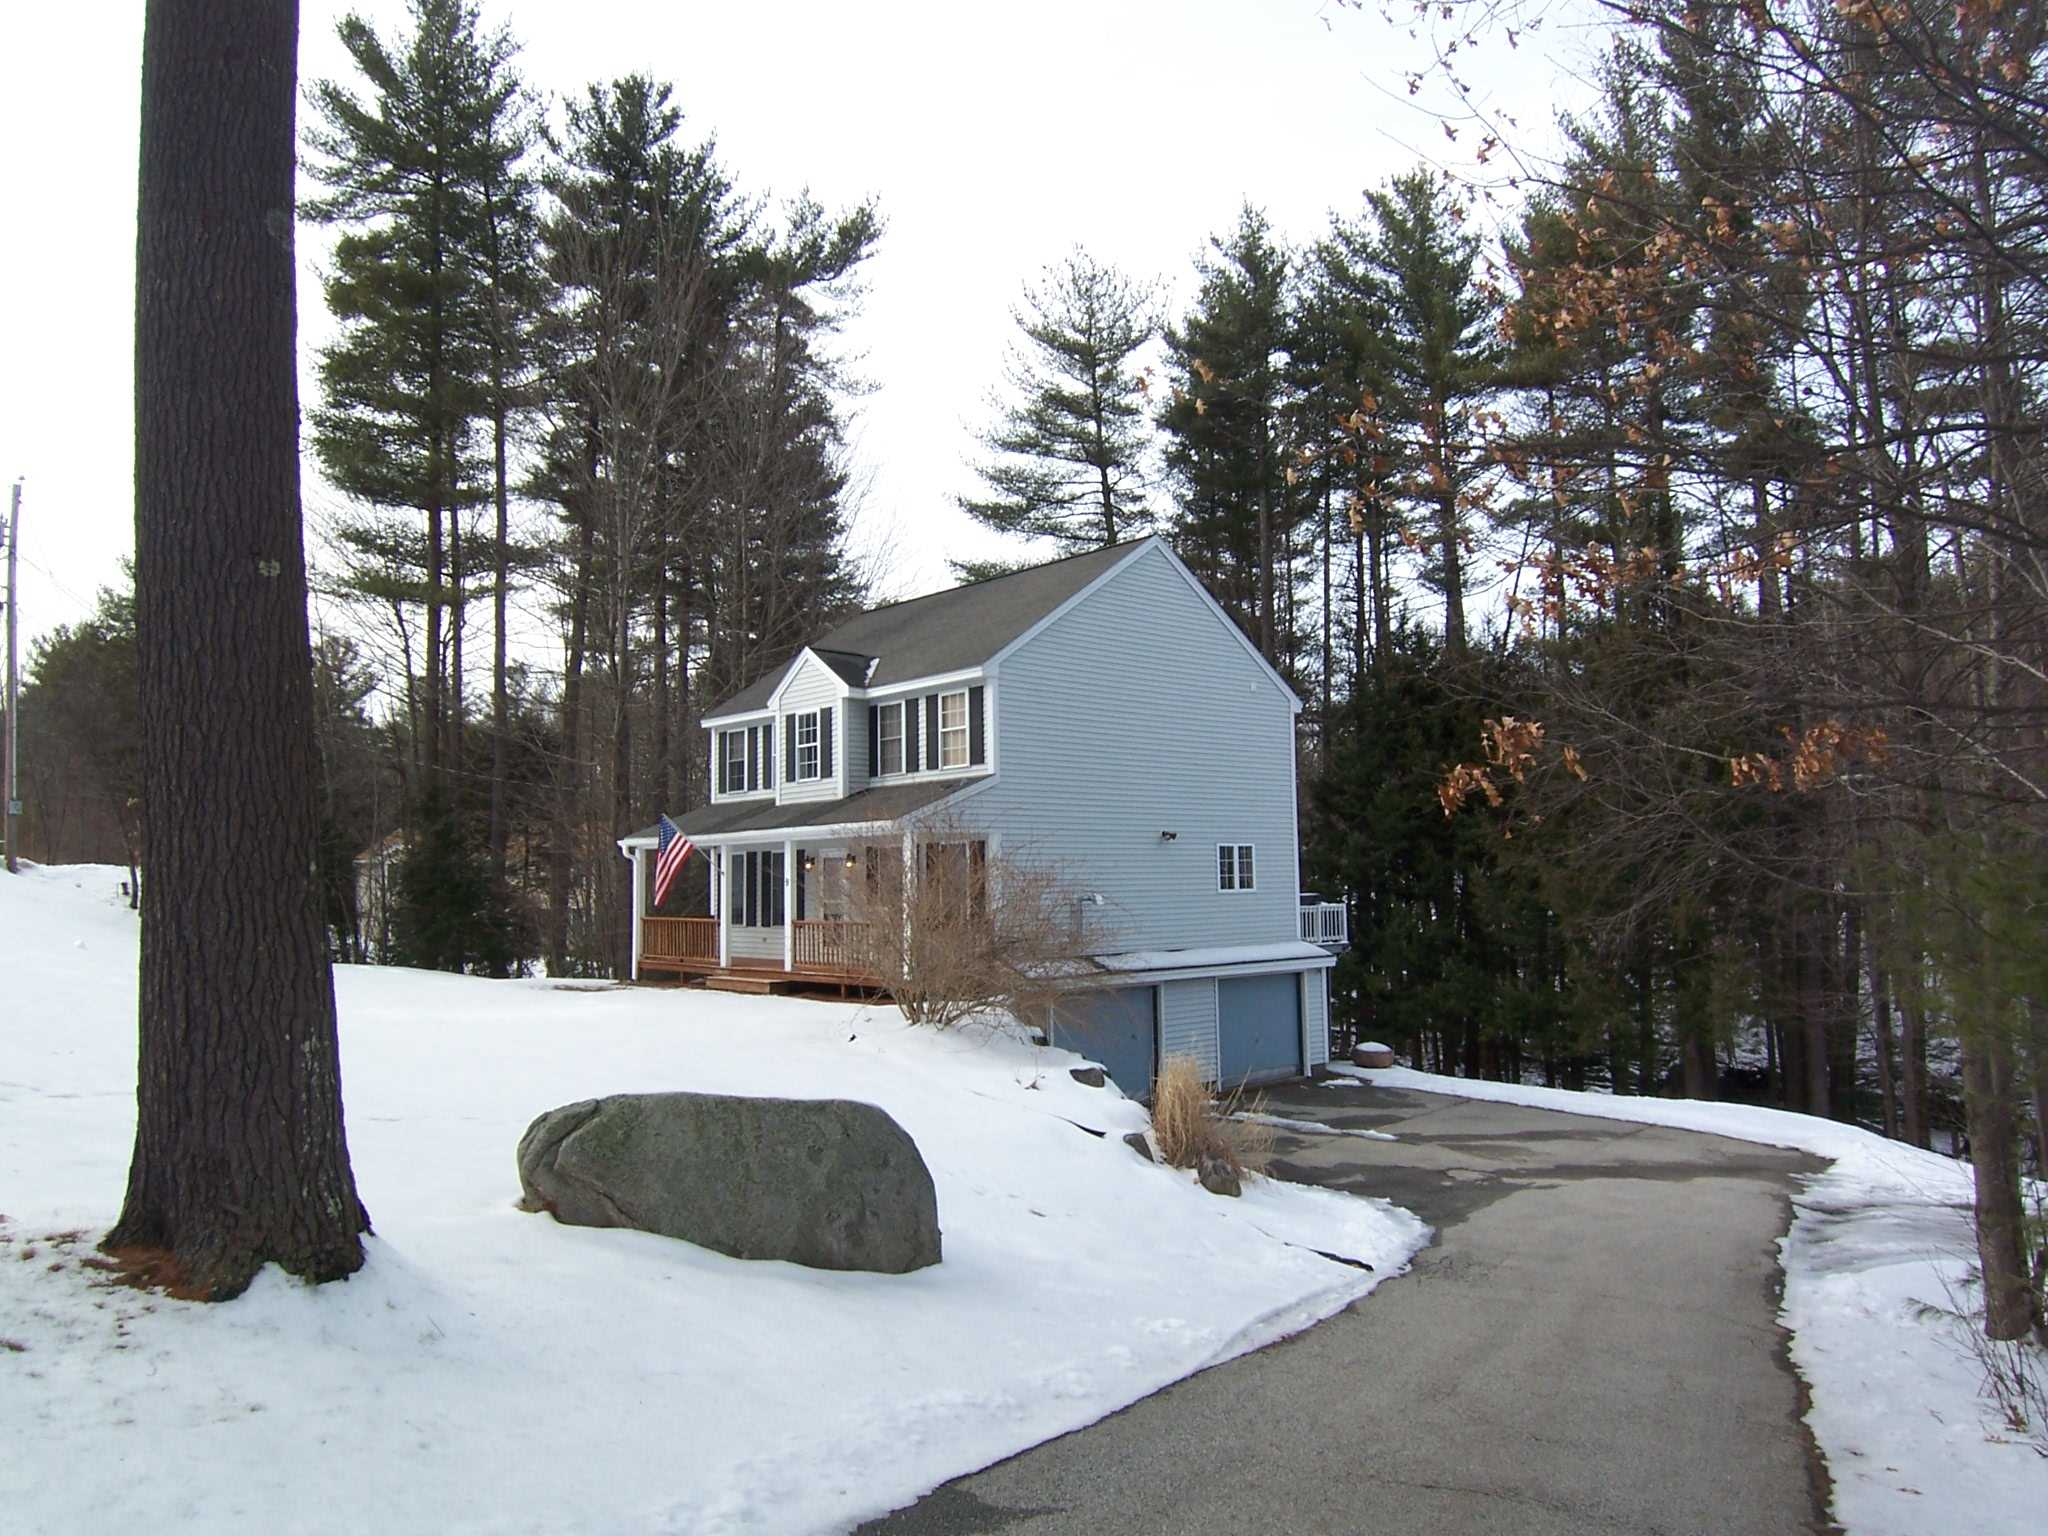 MLS 4793716: 9 Ox Brook Woods Road, Milford NH